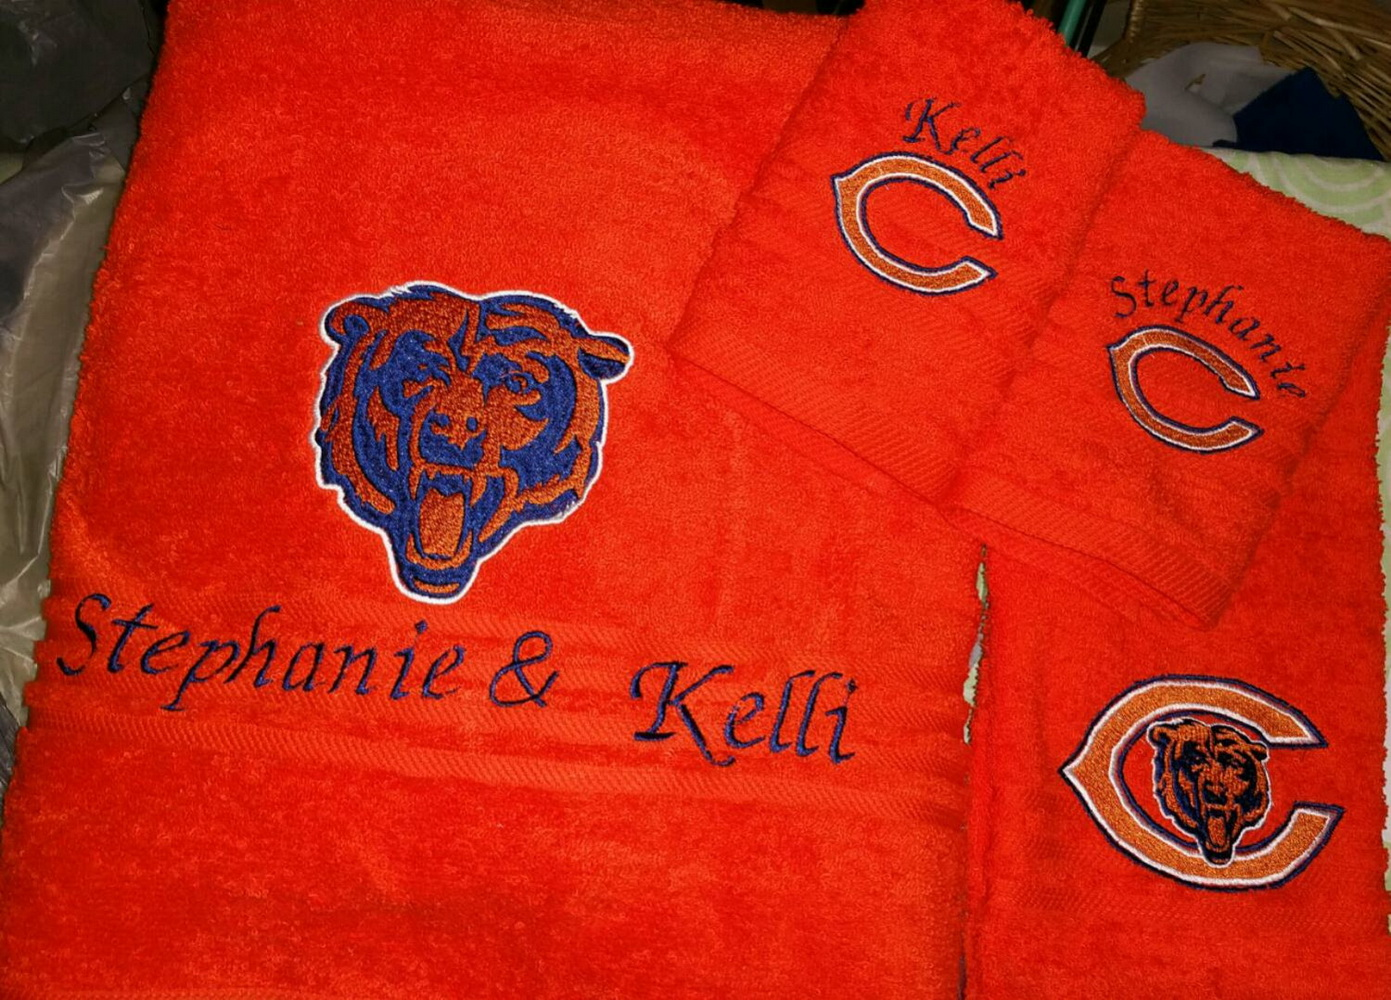 Chicago Bears logo embroidery design on towel